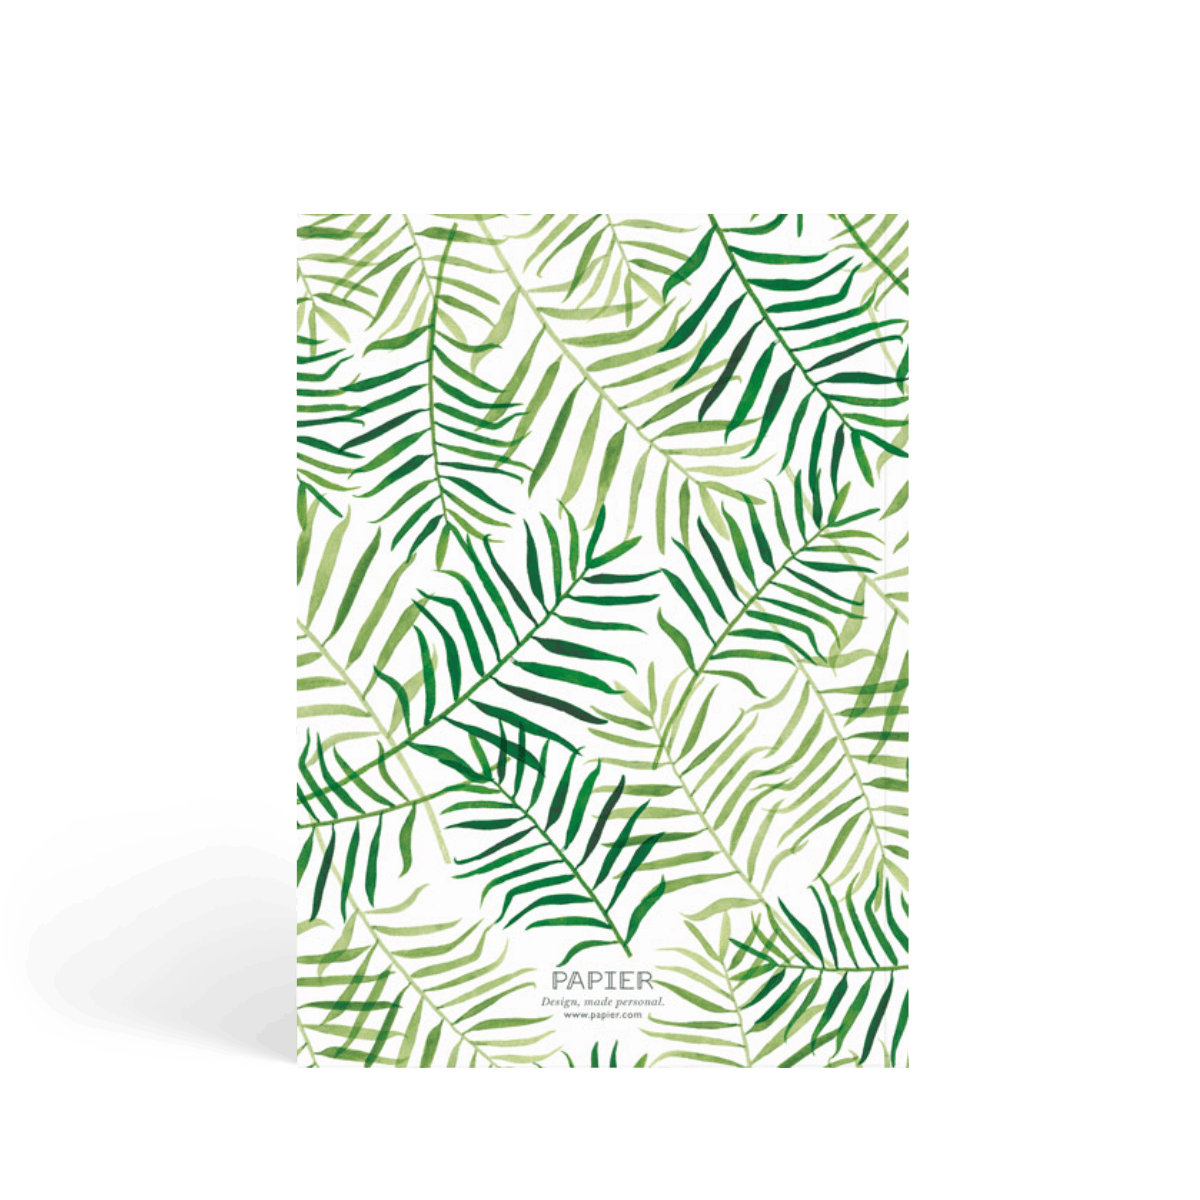 Https%3a%2f%2fwww.papier.com%2fproduct image%2f42032%2f5%2fpalm leaves 10719 back 1532361341.png?ixlib=rb 1.1